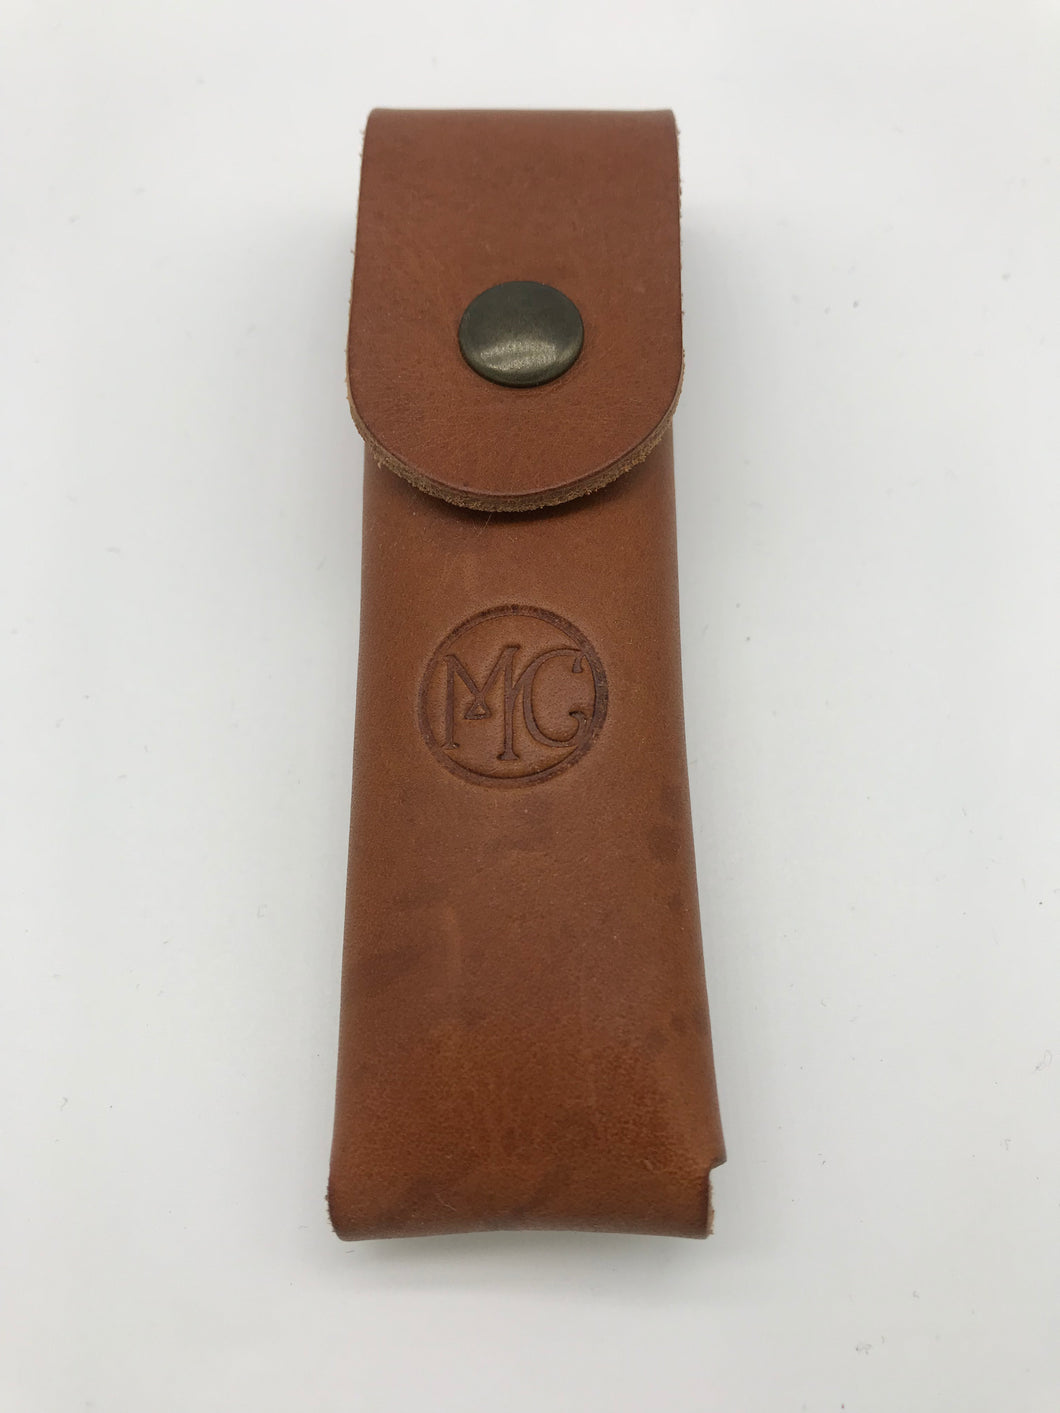 Man Comb UK Leather Case